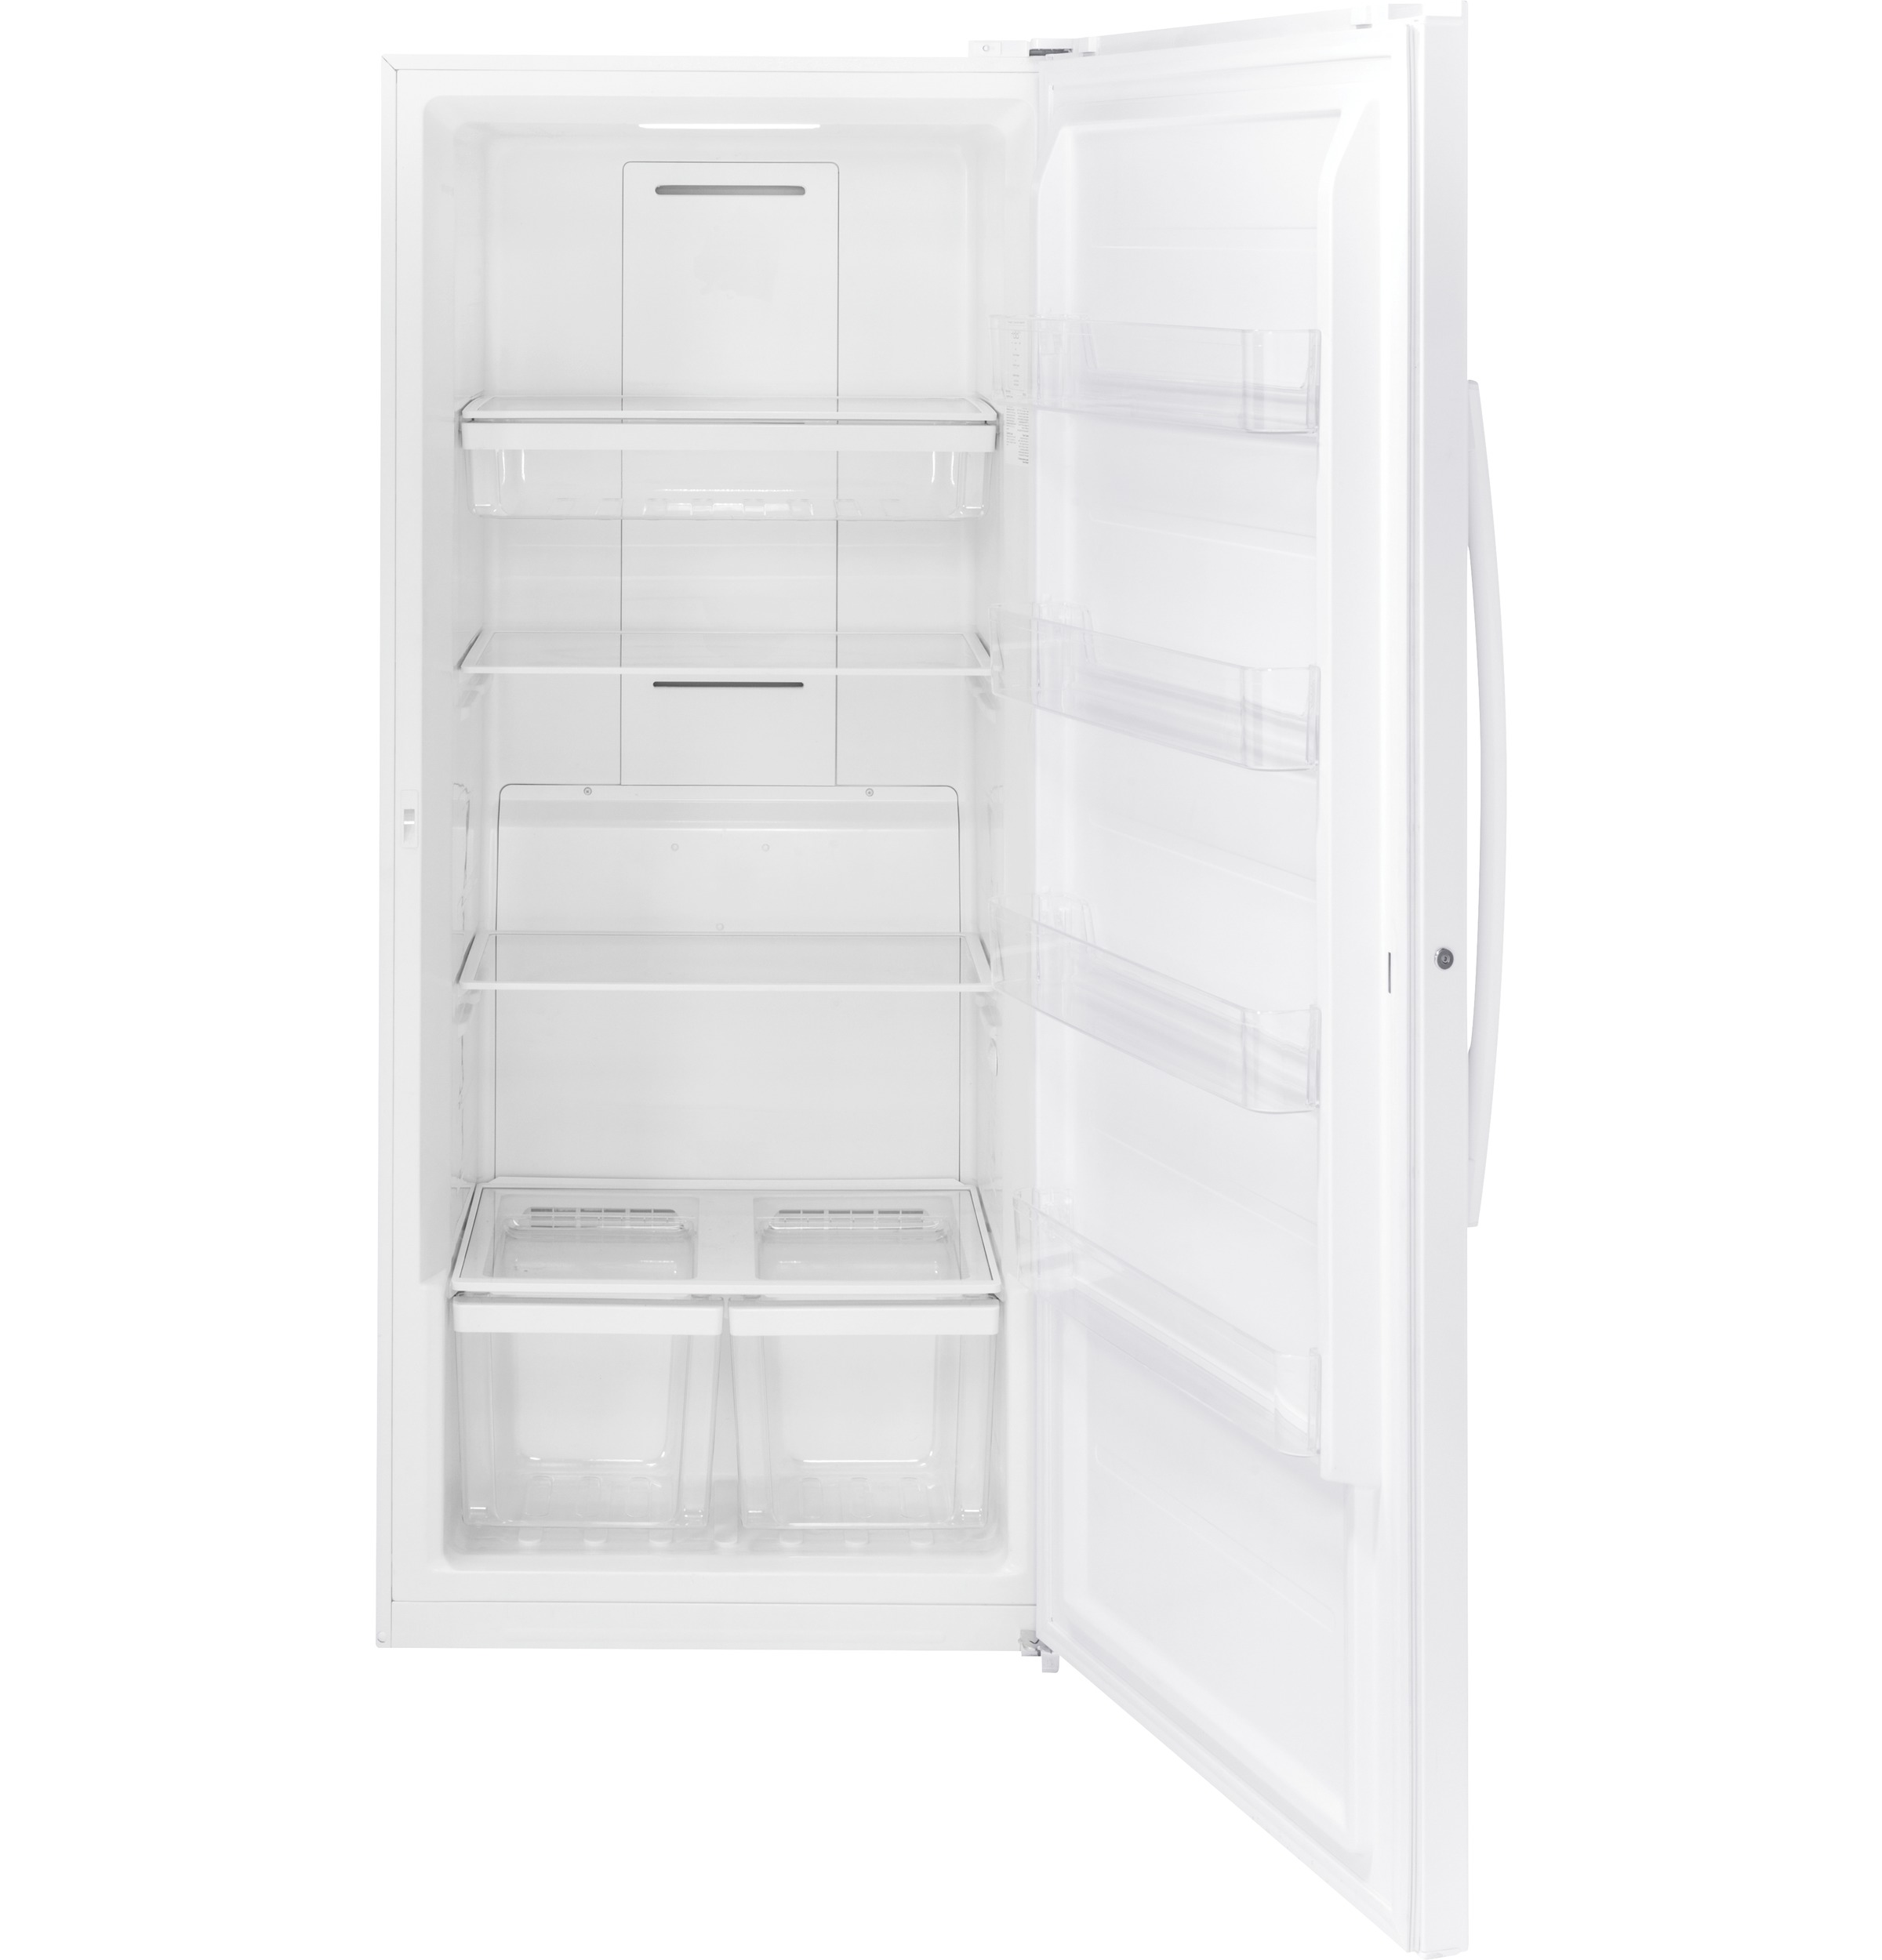 Model: FUF21DLRWW | GE GE® 21.3 Cu. Ft. Frost-Free Upright Freezer